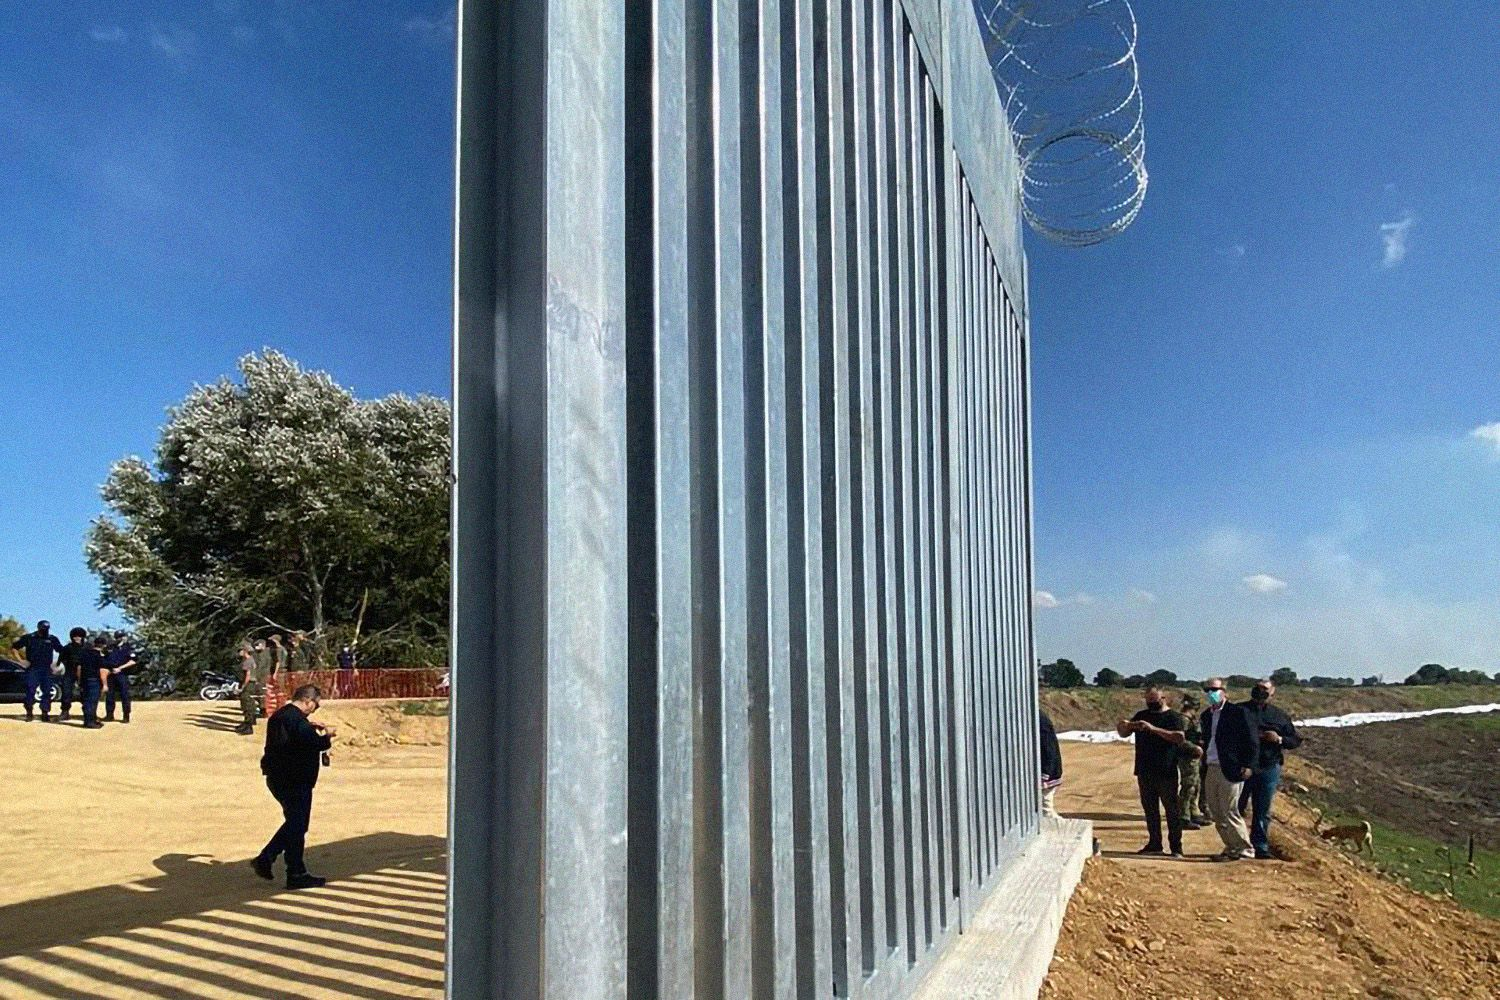 New Evros fence at the border with Turkey, Greece - 25 Sep 2020